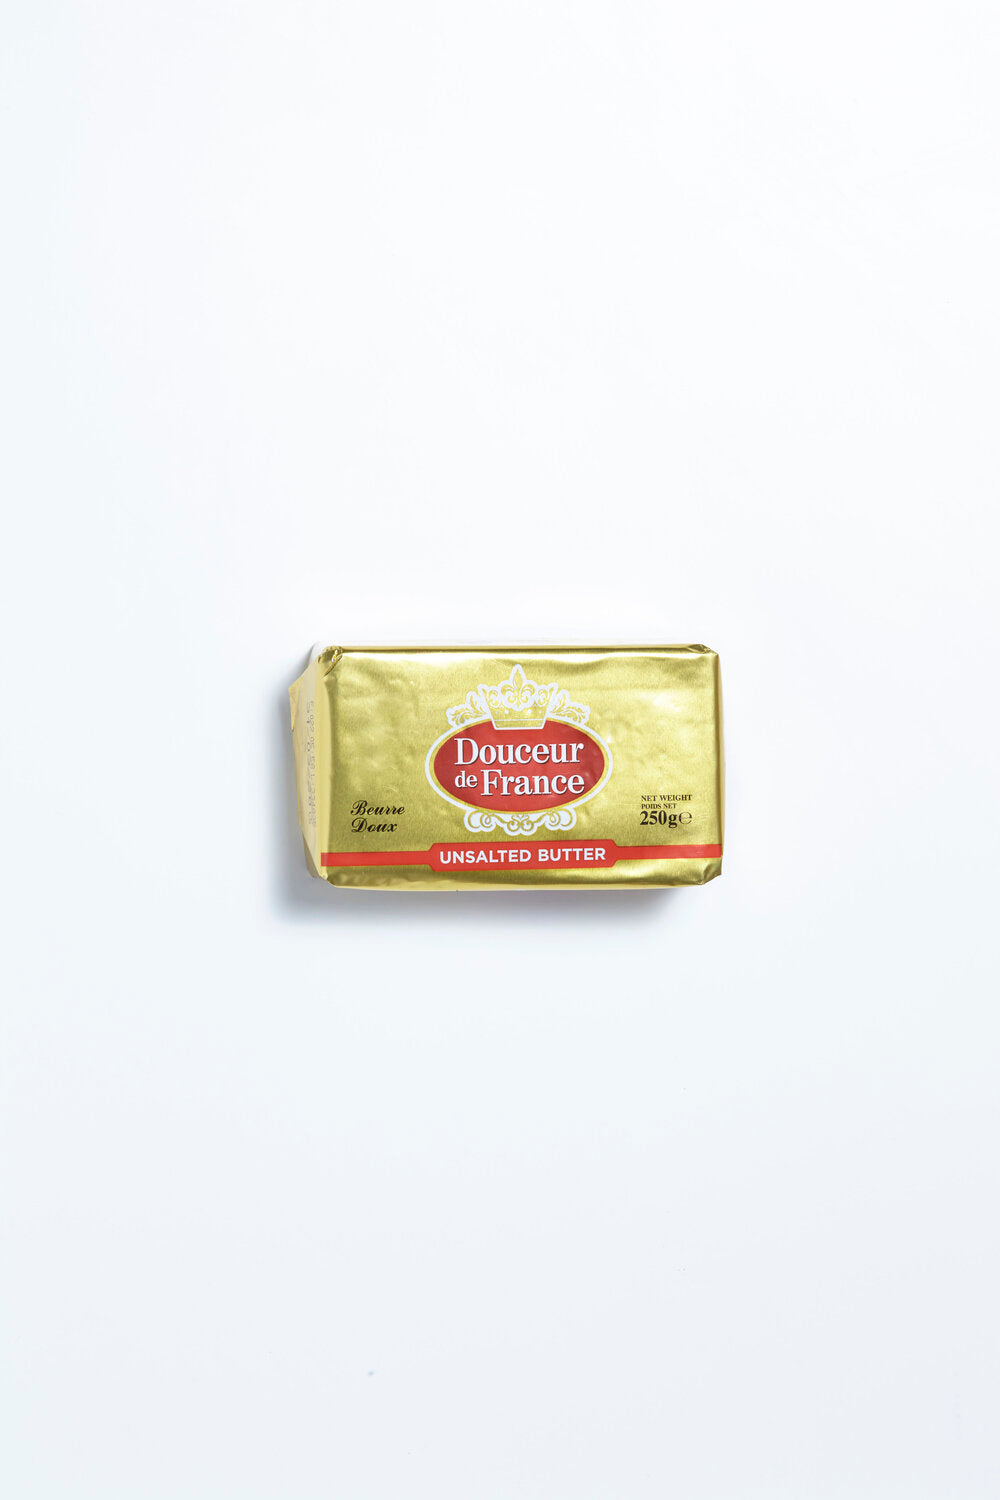 Douceur de France Unsalted Butter 250g